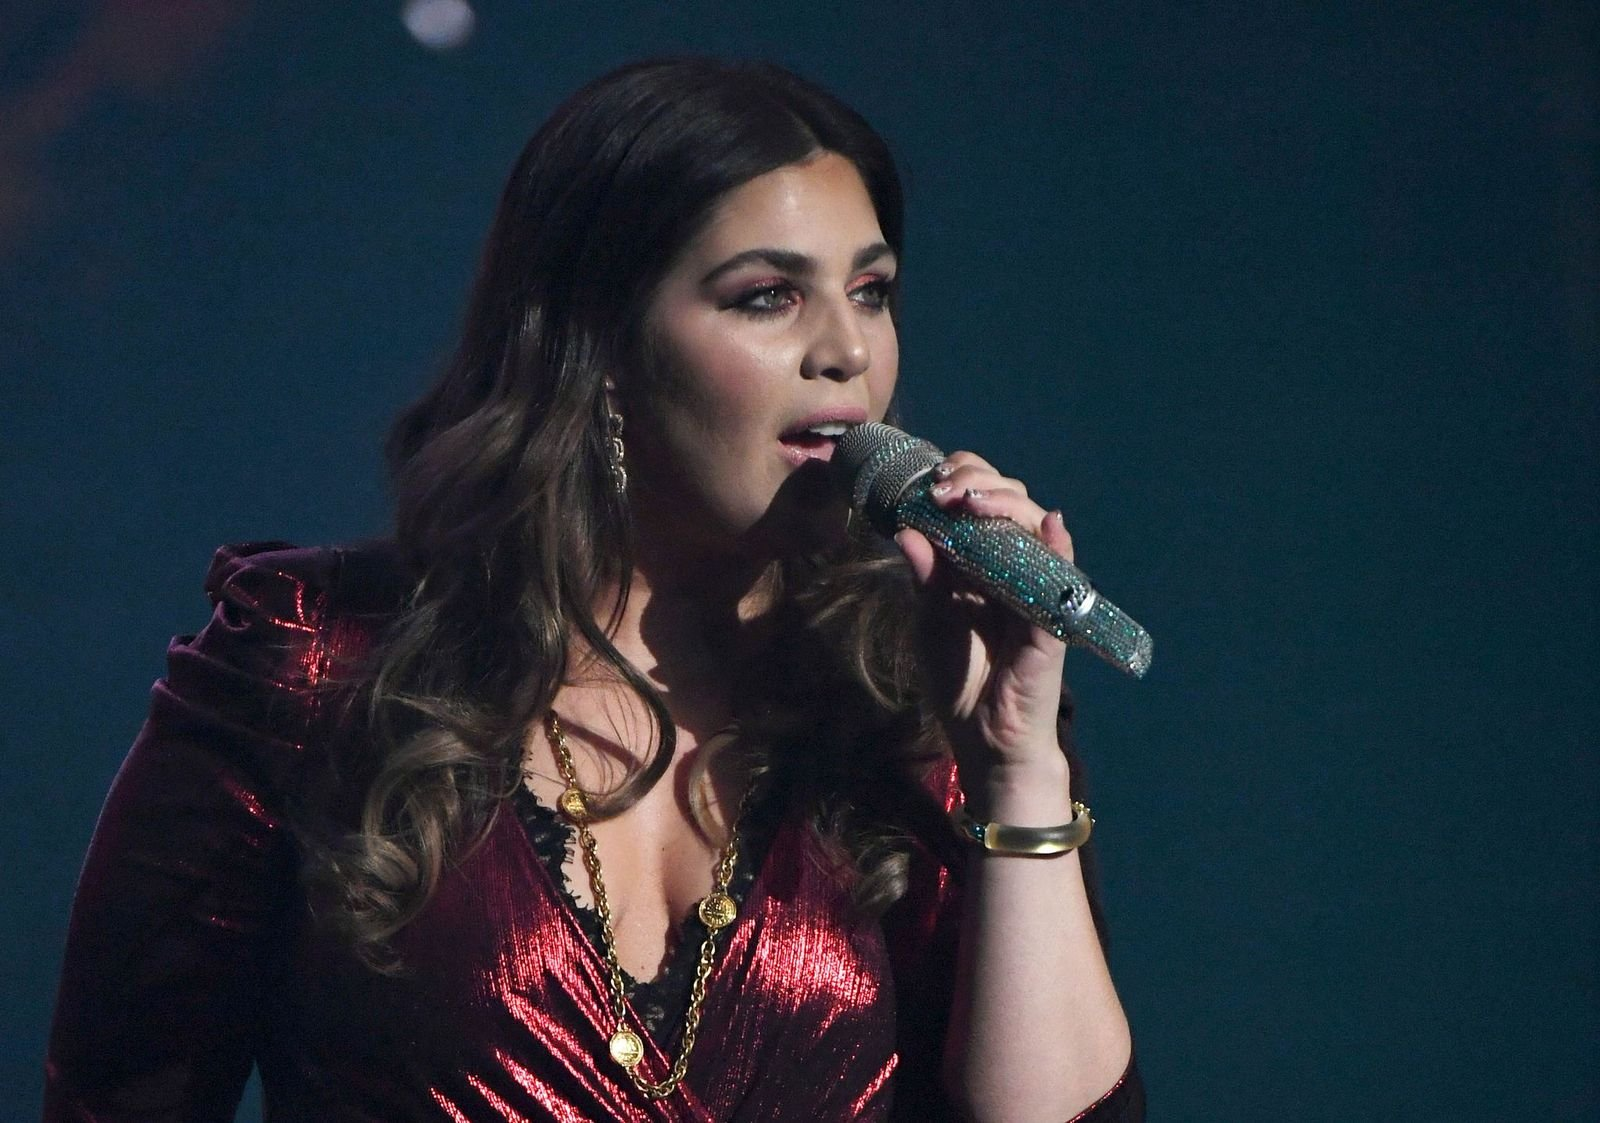 """Hillary Scott performing at the """"Our Kind of Vegas"""" residency on February 8, 2019, in Las Vegas, Nevada   Photo: Ethan Miller/Getty Images"""